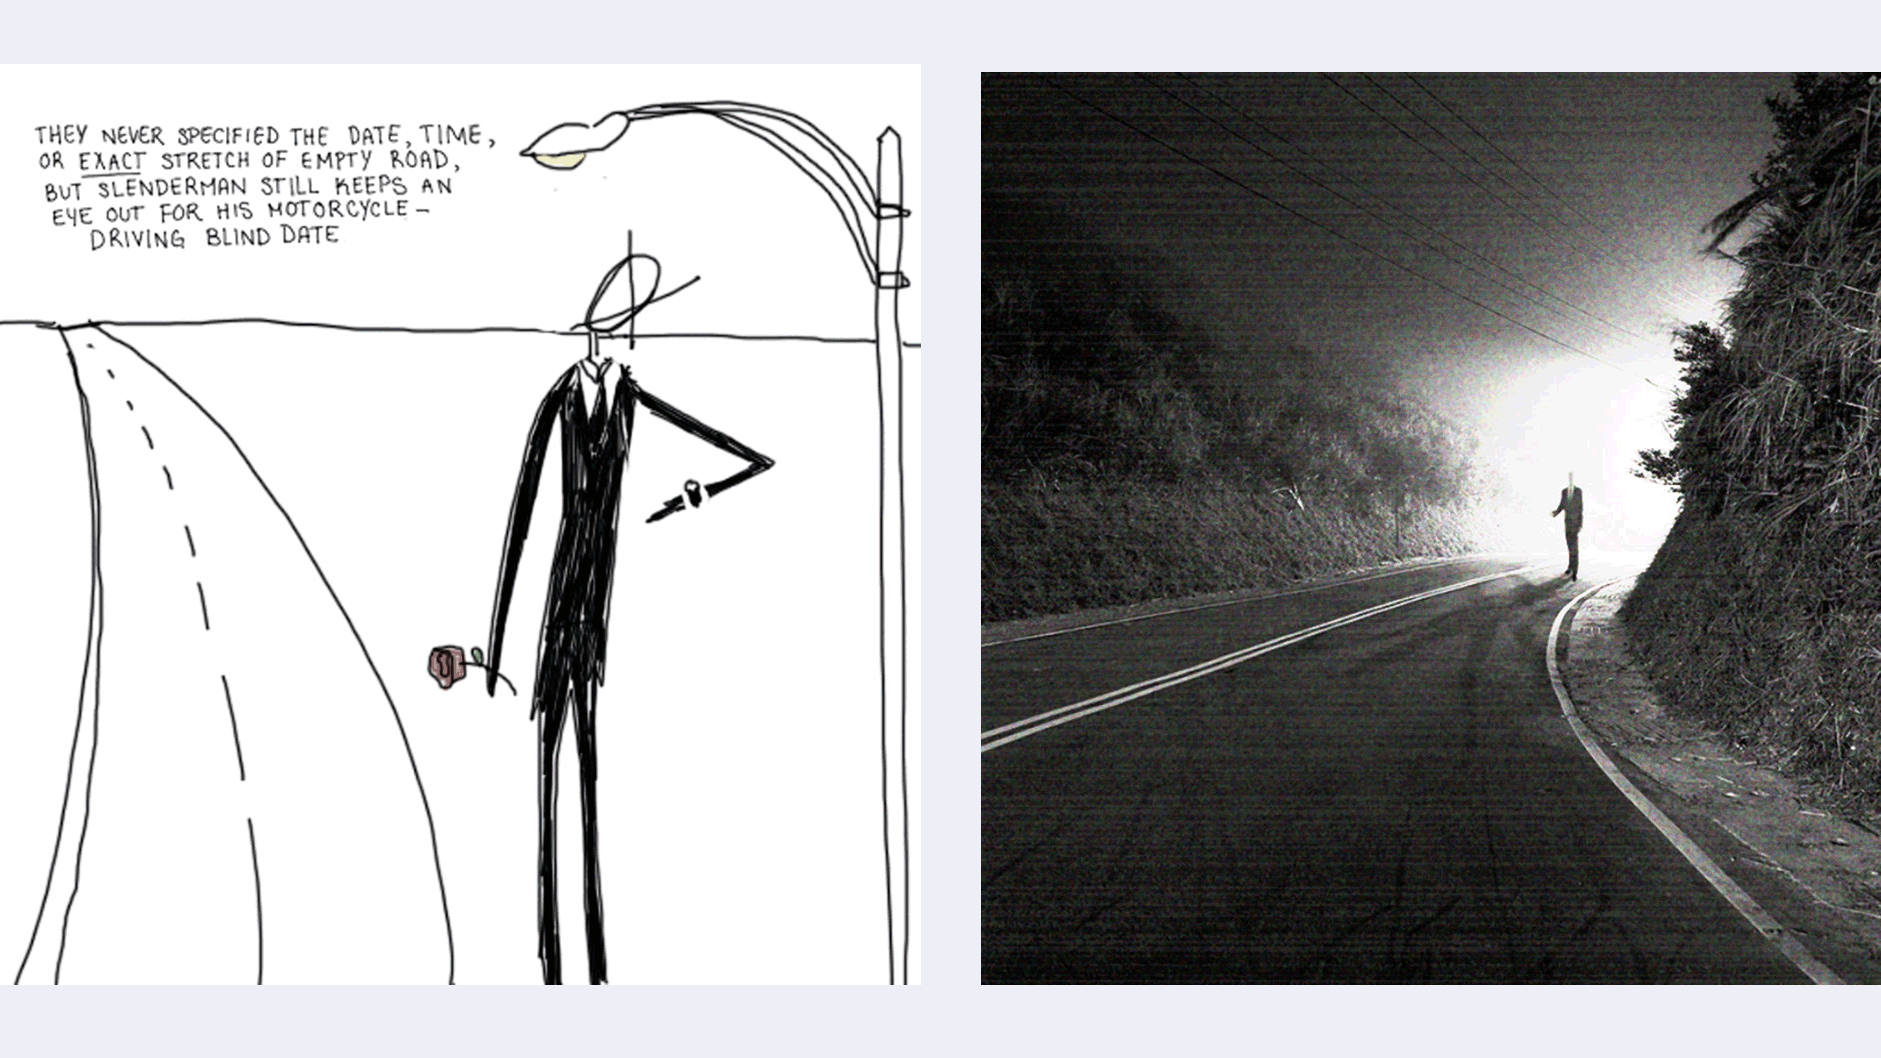 Slenderman Just Wants Love graphic